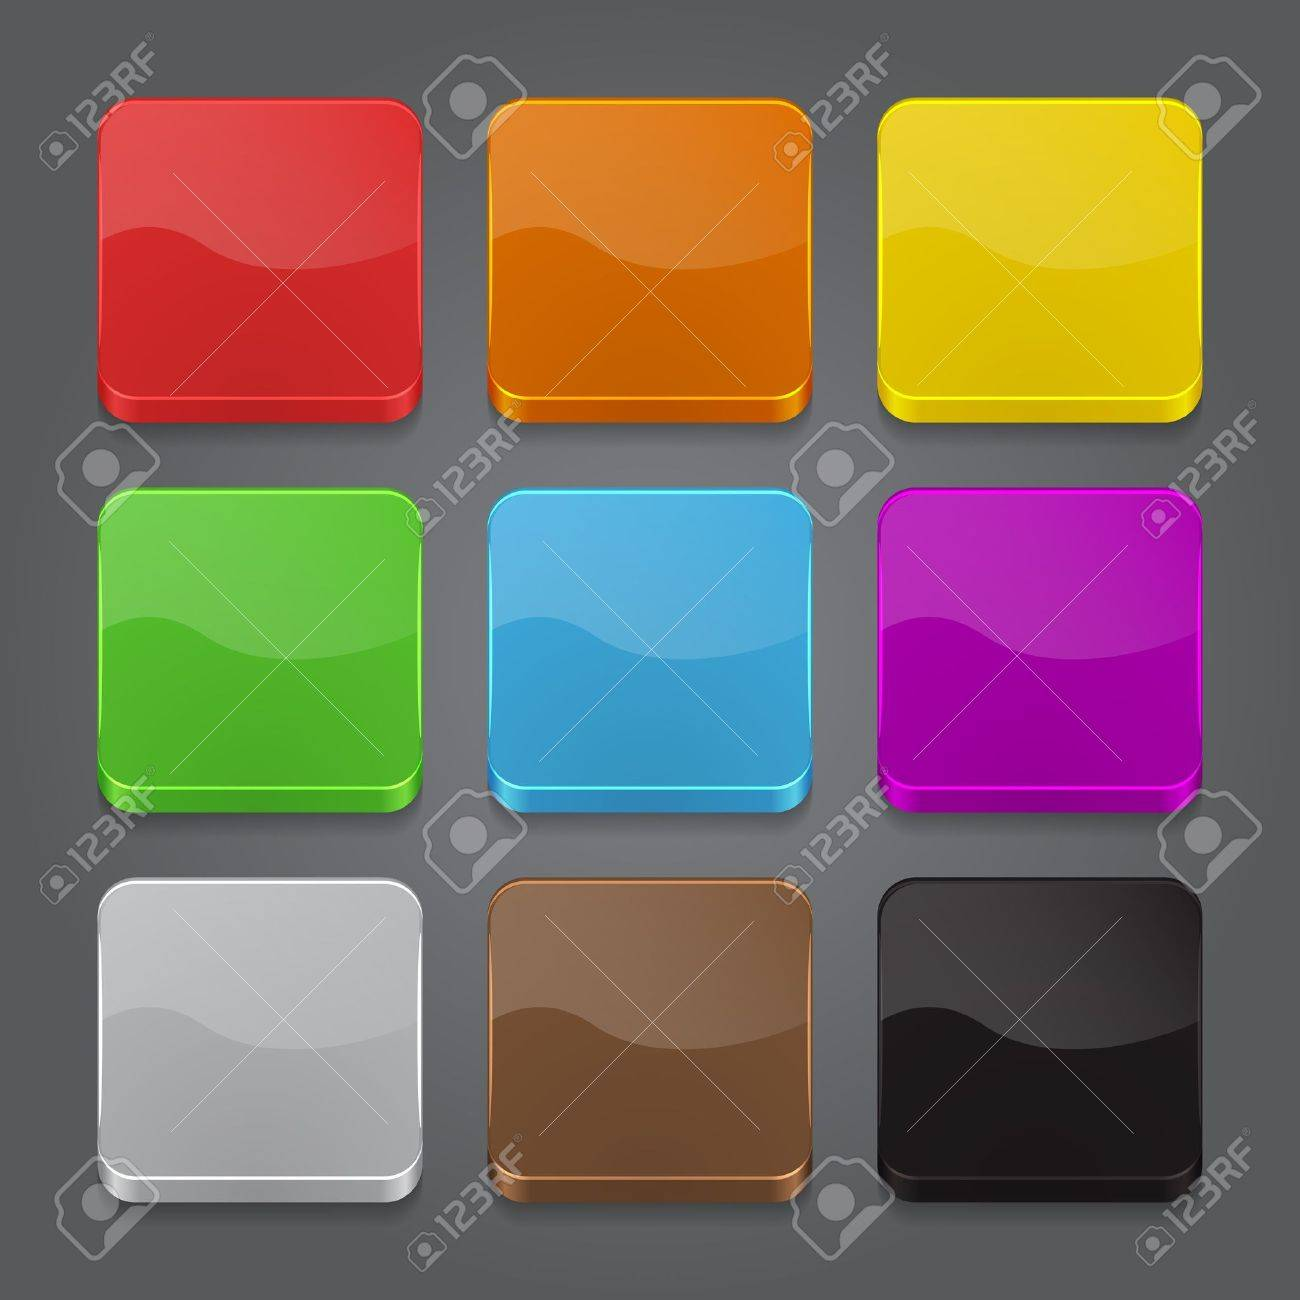 App icons background set. Glossy web button icons. Vector illustration Stock Vector - 18846742